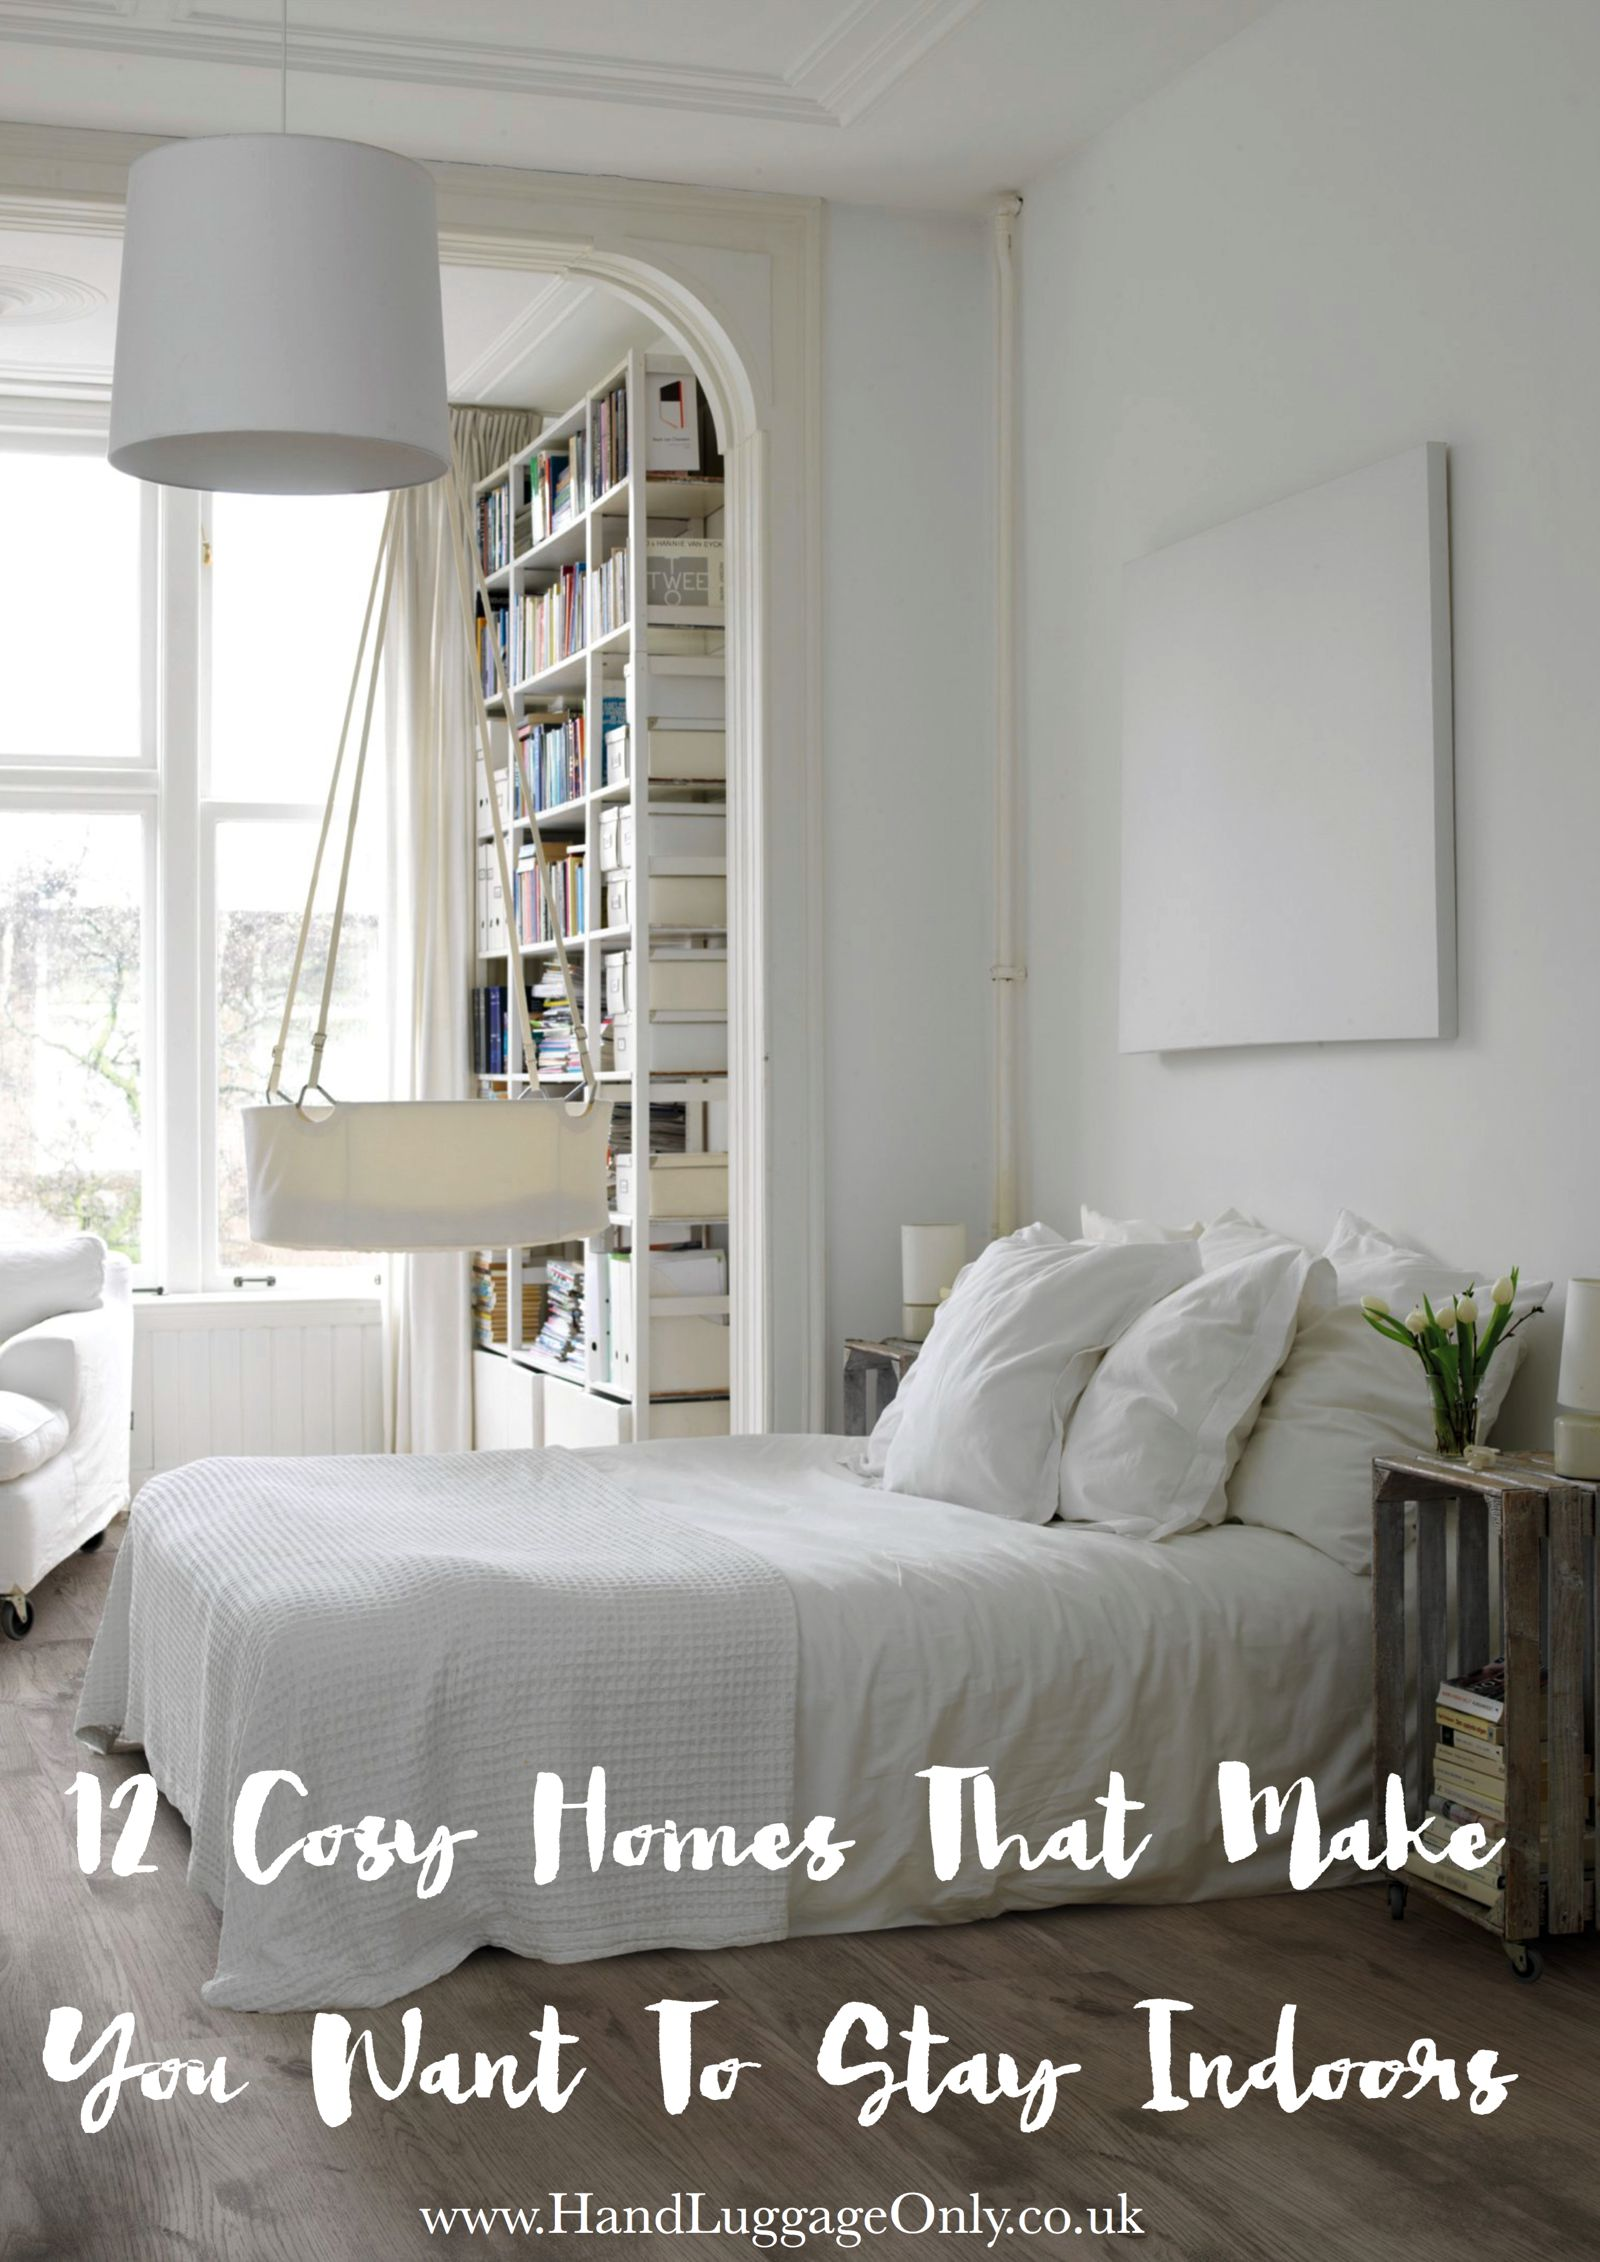 12 Cosy Homes That Make You Glad It's Winter!